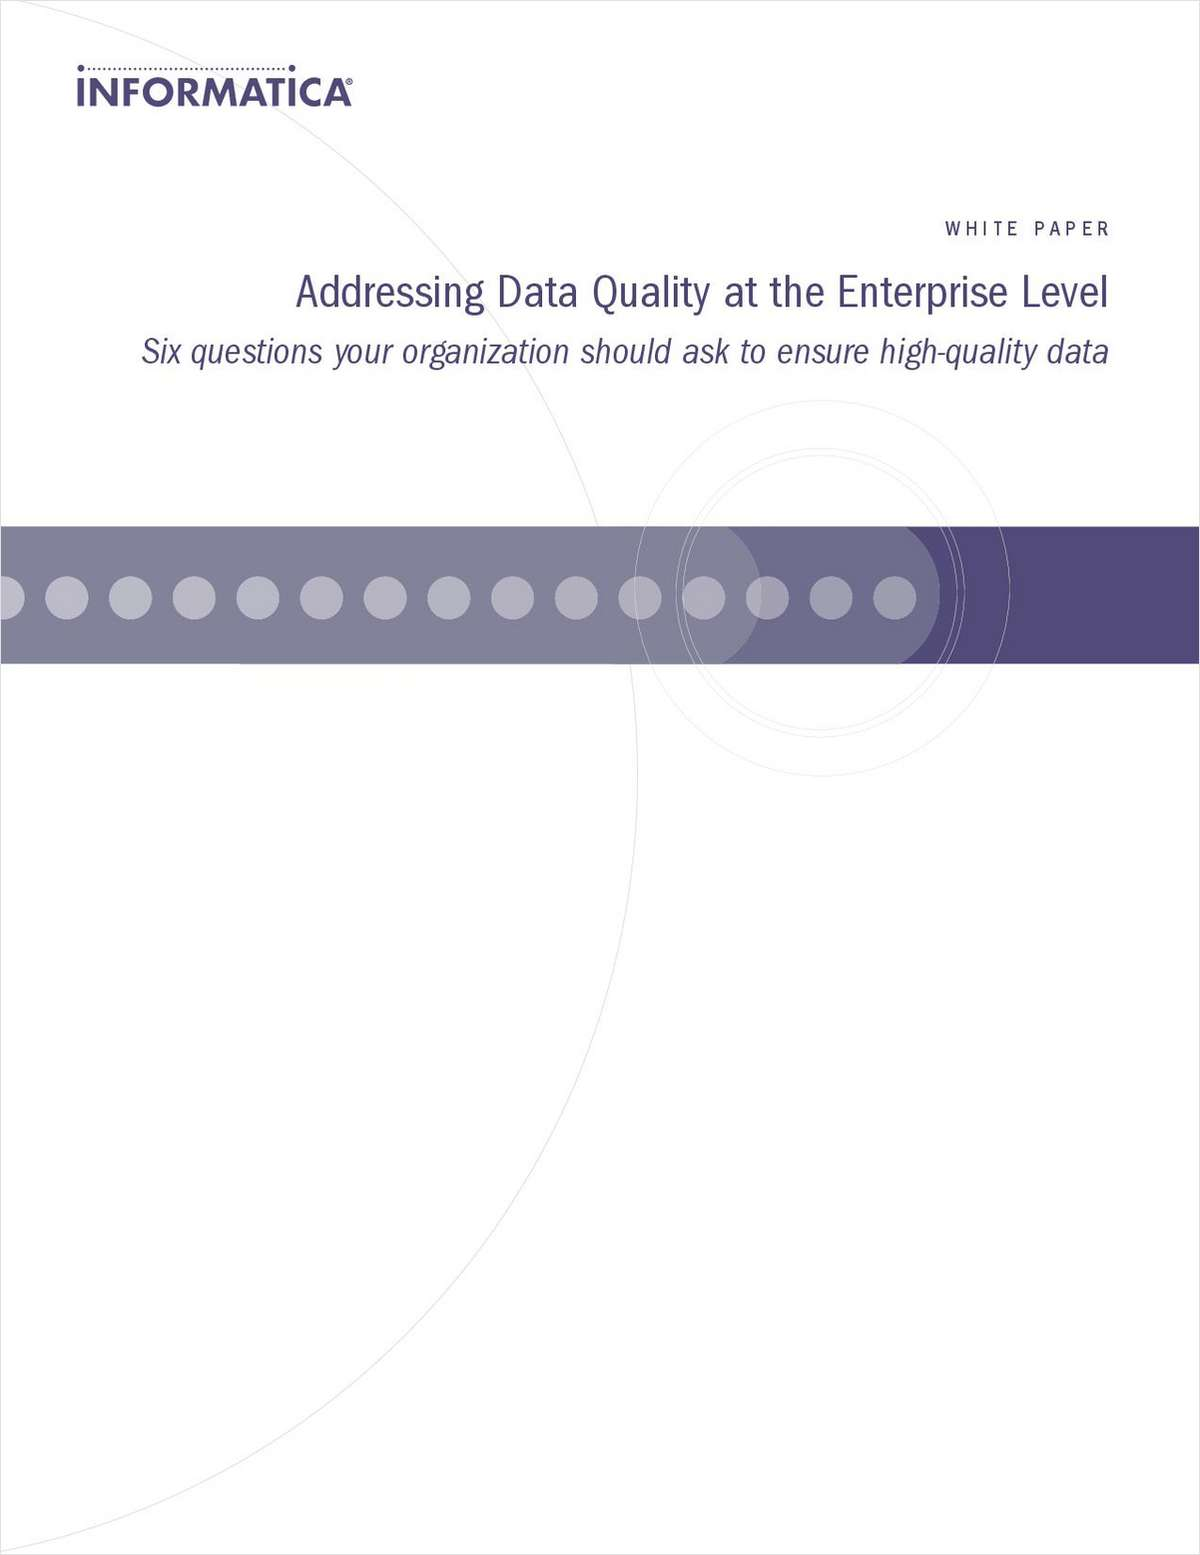 Addressing Data Quality at the Enterprise Level: Six Questions to Ensure Enterprise High-Quality Data